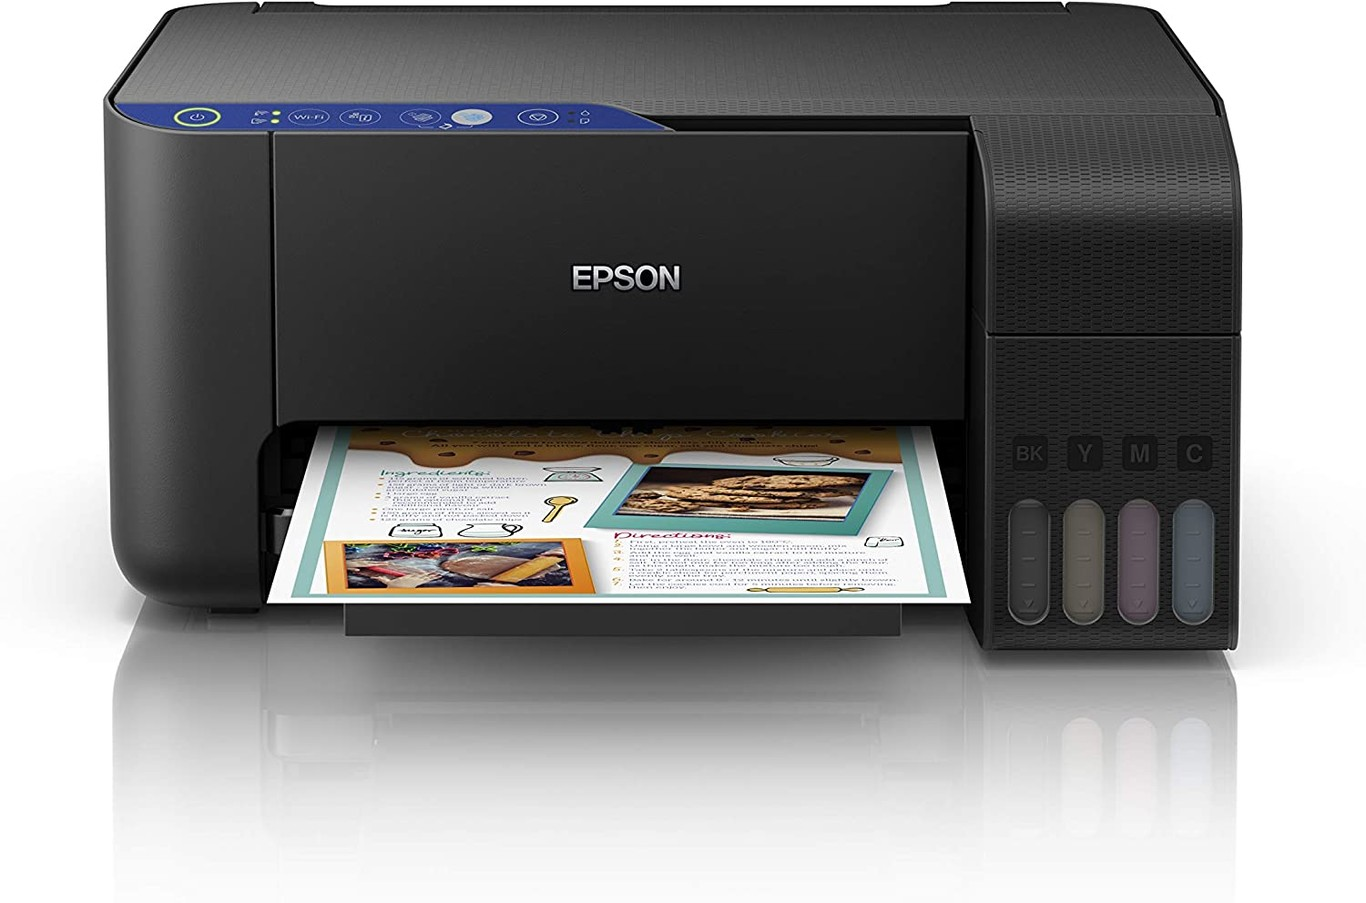 23 Best Printers (2020): Buying Guide With Tips 18